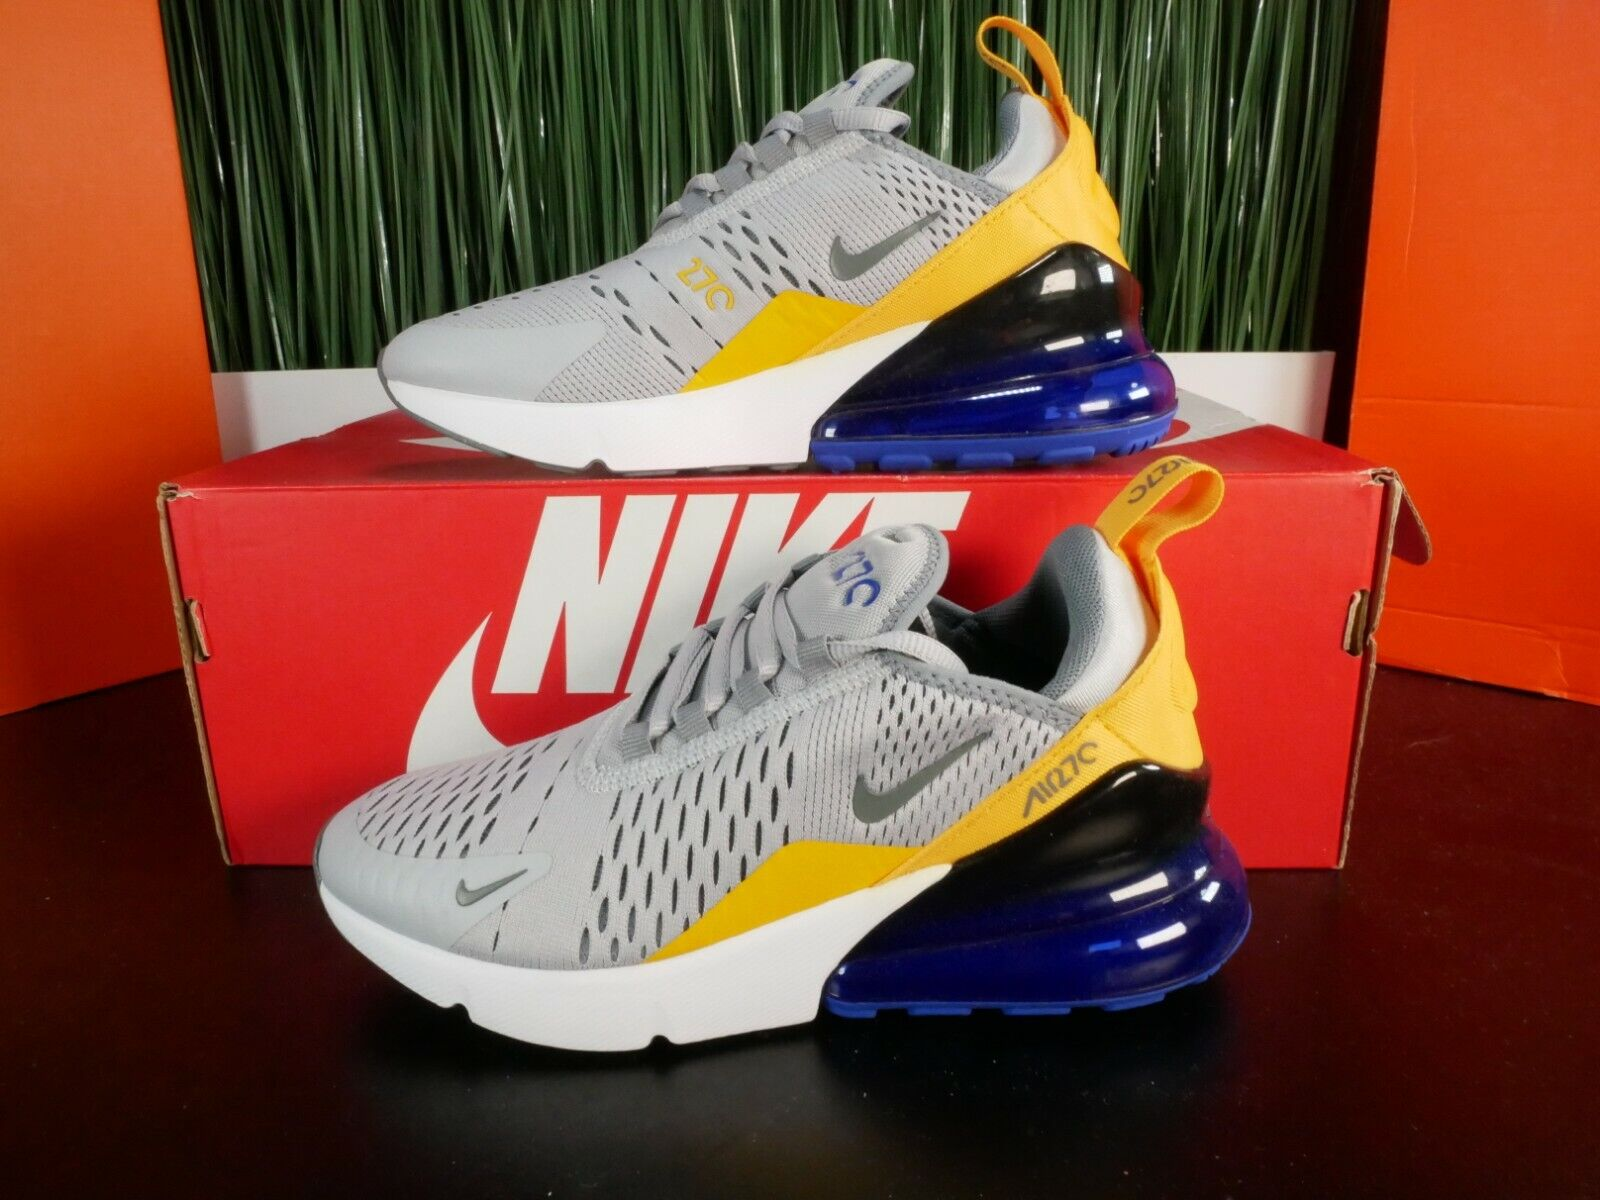 2018 Womens Nike Air Max 270 Flat Gold Size 5 Deadstock Rare For